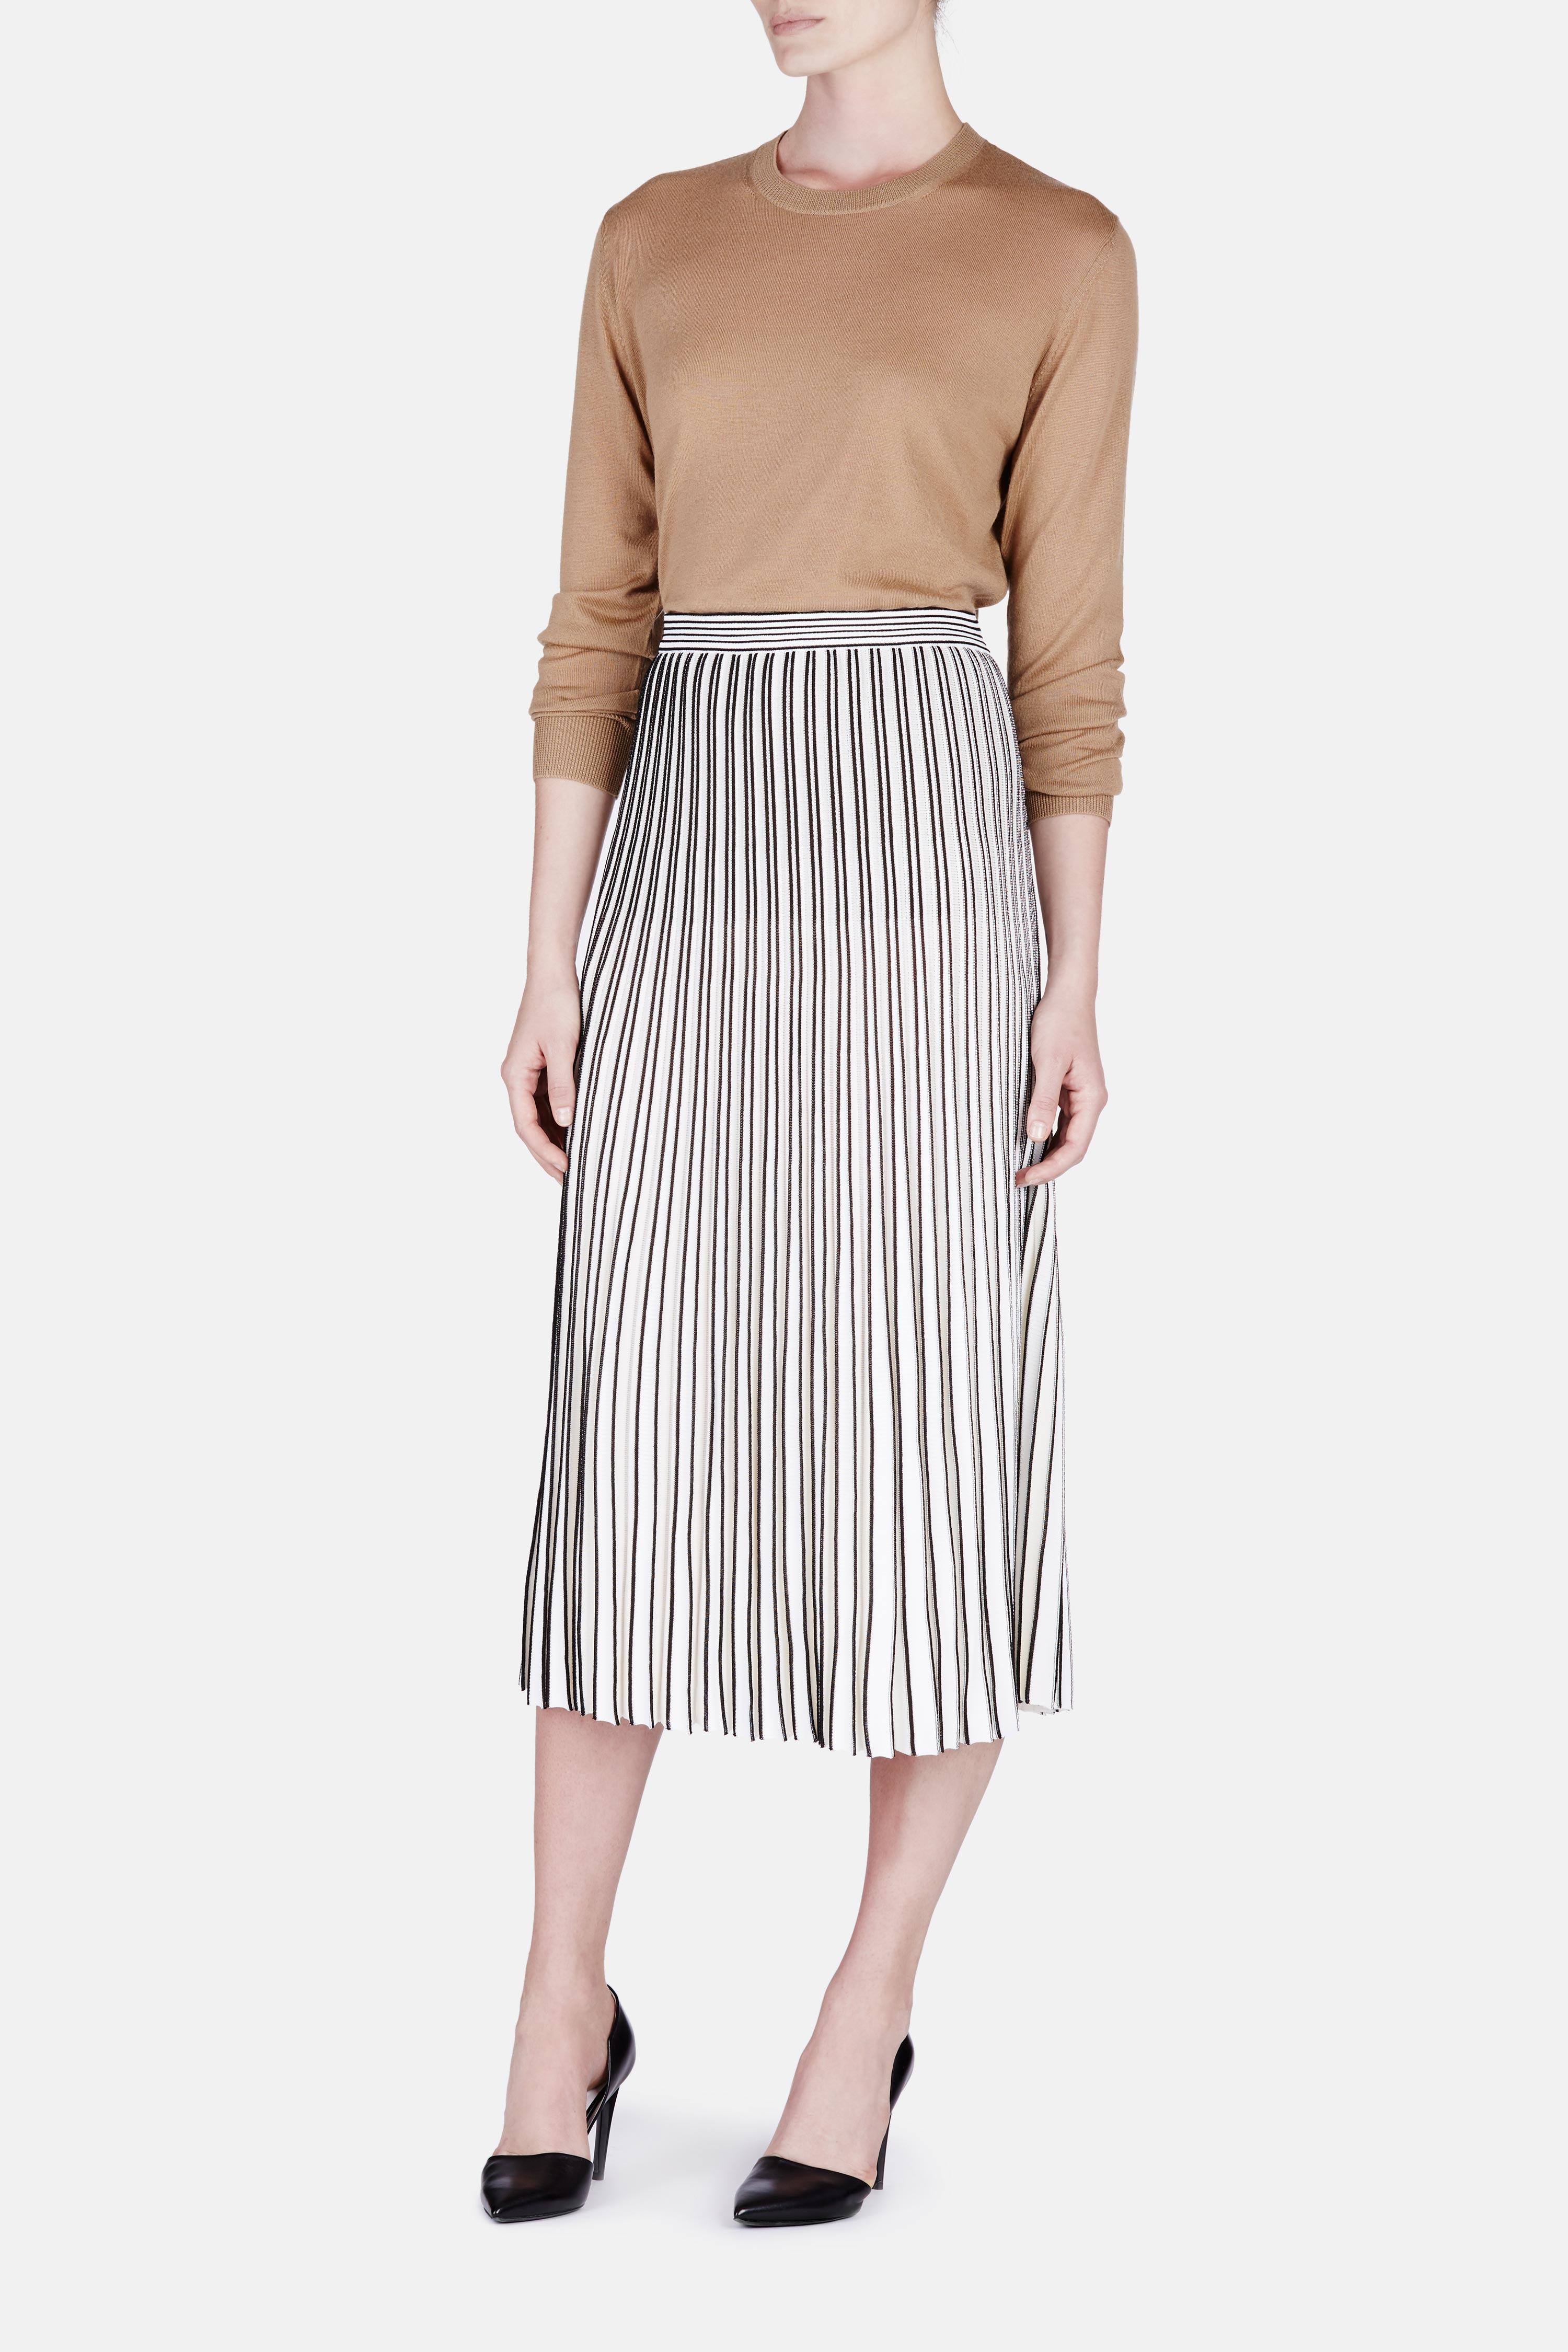 Tall Women Skirts - Our long skirts for tall women are flattering fashion staples that no wardrobe should be without. Browse our latest collection for skirts in a variety of stylish and comfortable fits, ranging from elegant maxis to demure pencil skirts.